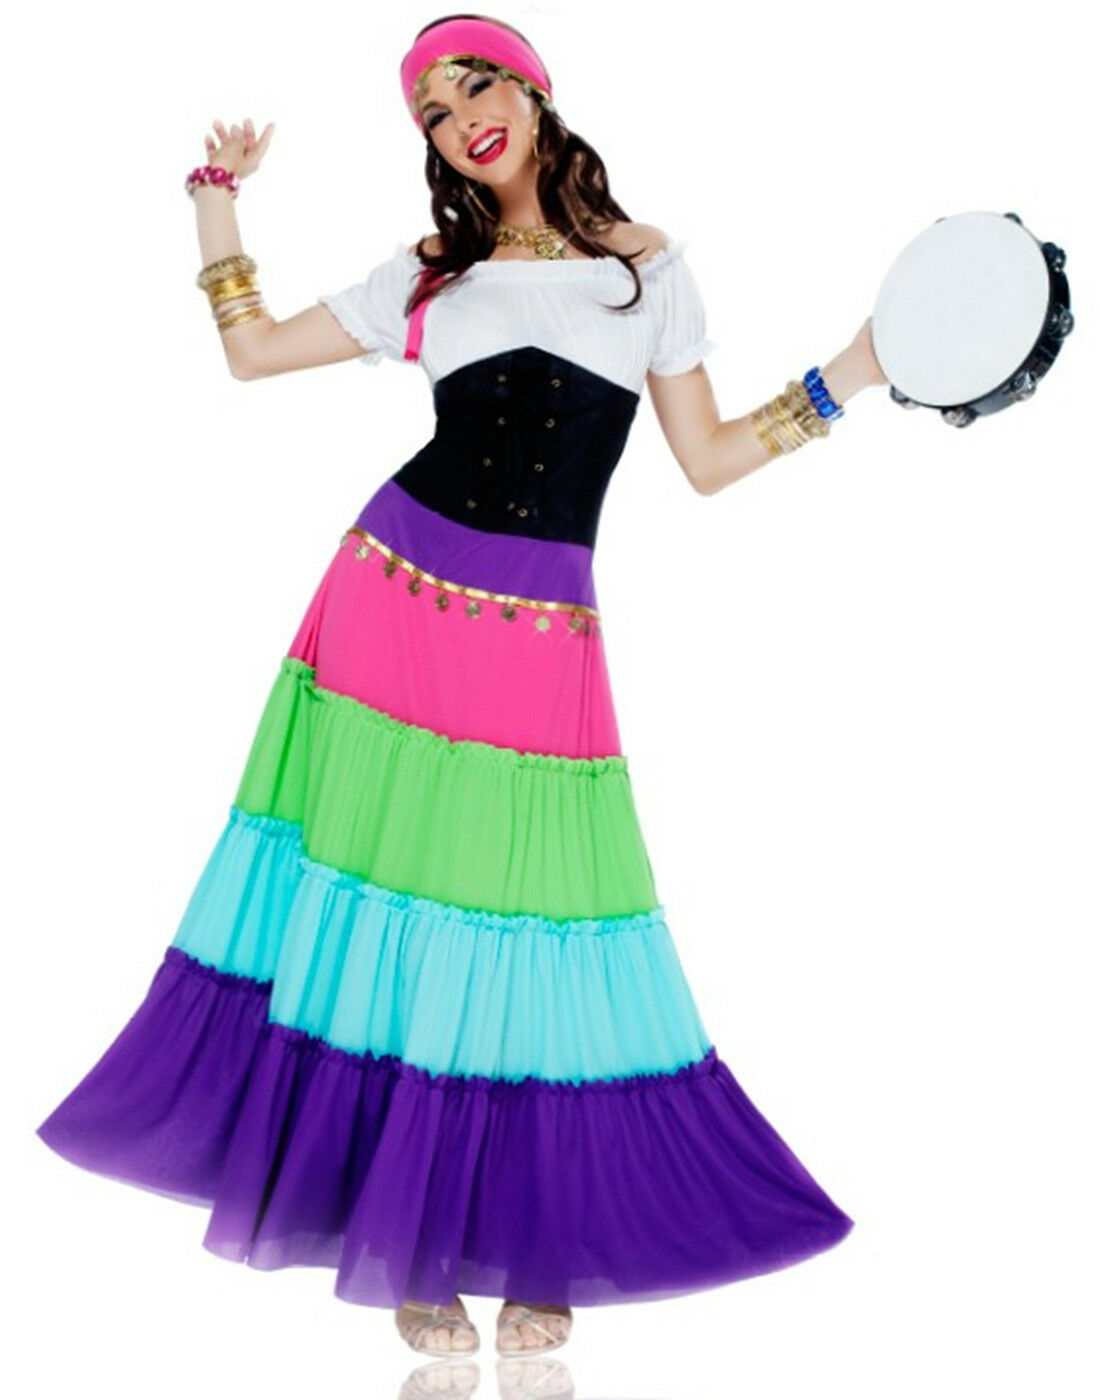 Bohemian Gypsy Esmeralda Renaissance Dress Adult Plus Size Costume